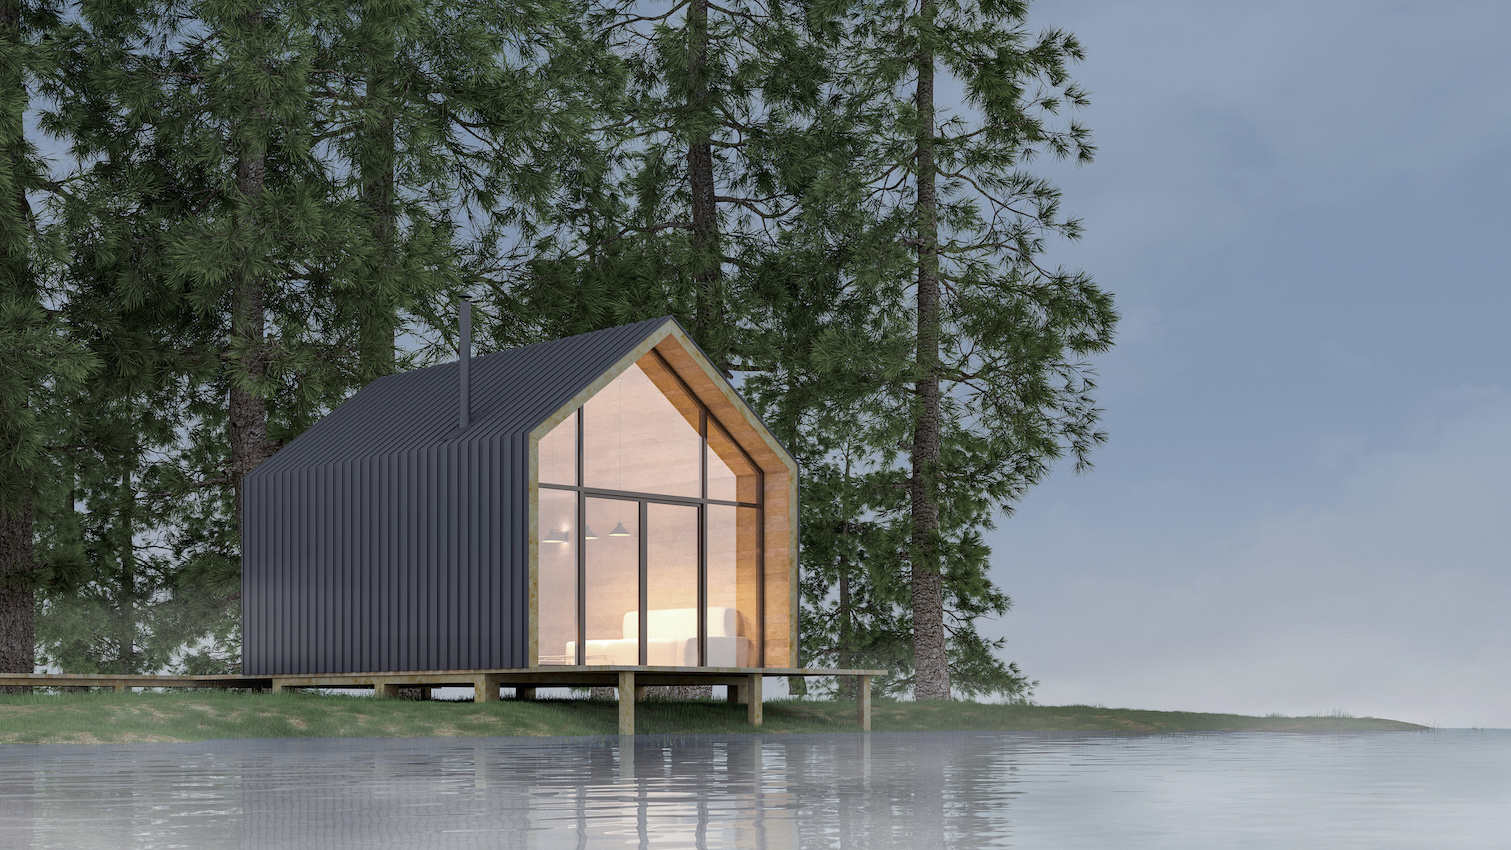 Rendering of tiny house